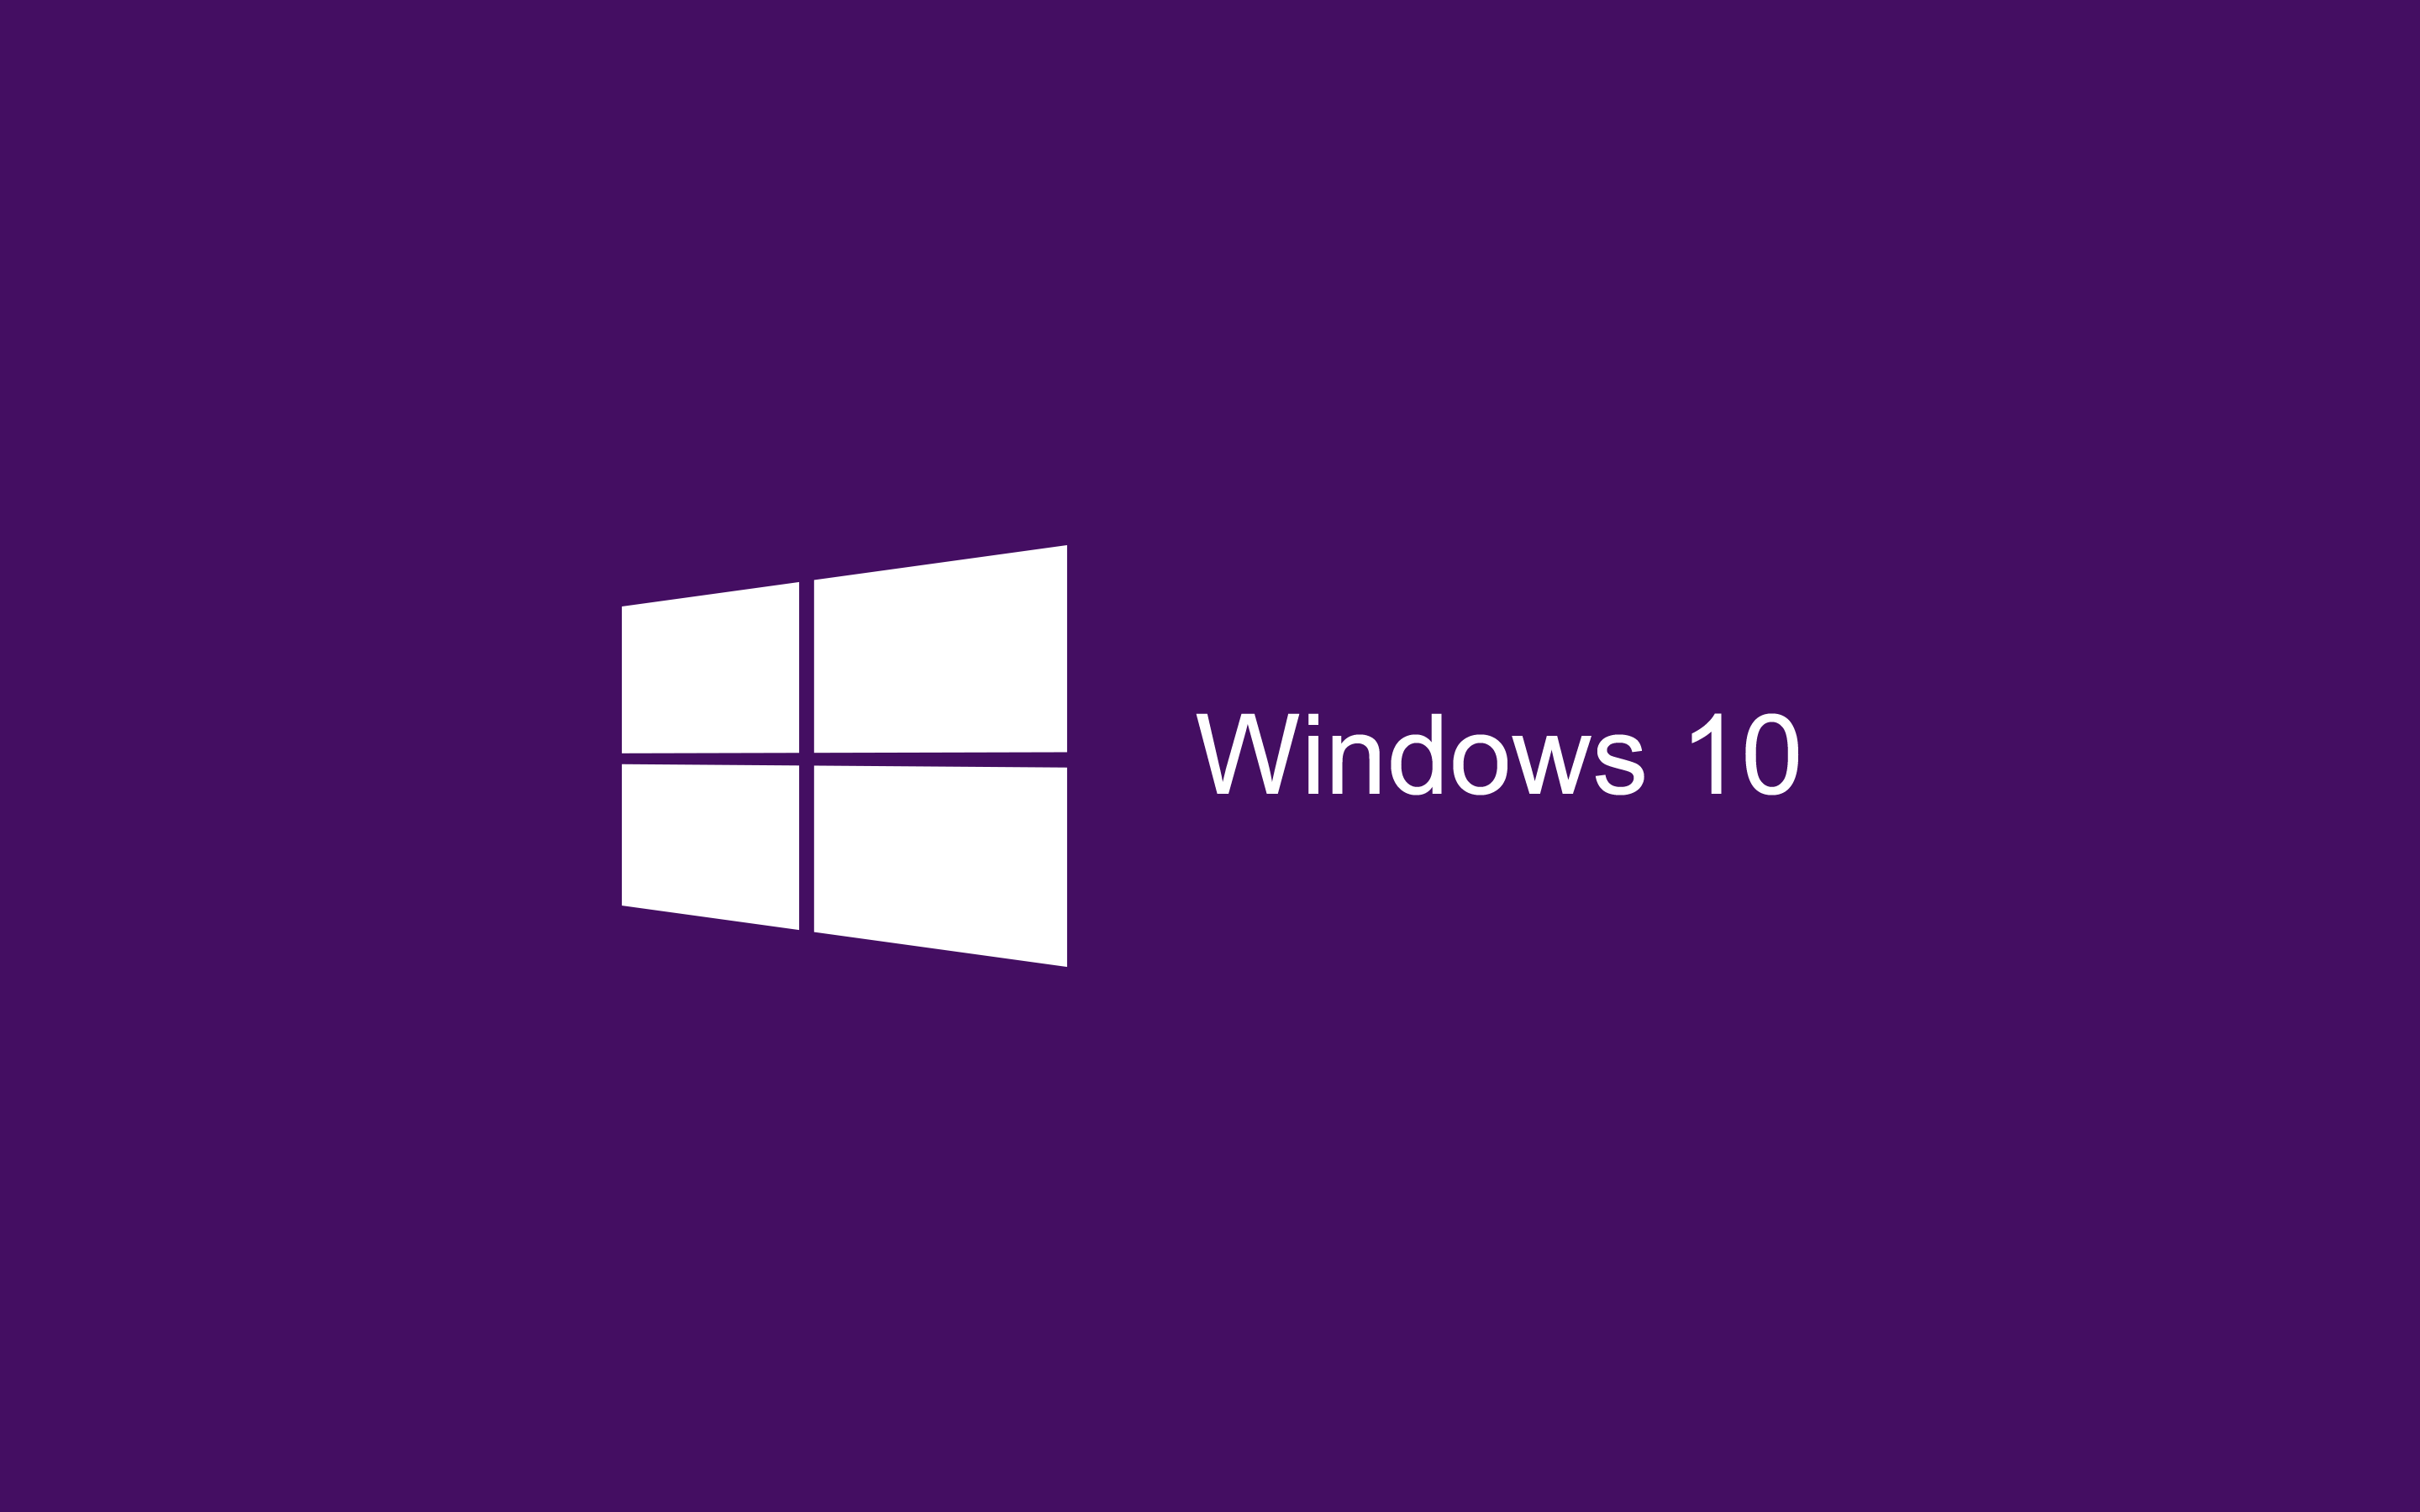 Windows 10 wallpapers hd download for Window design wallpaper